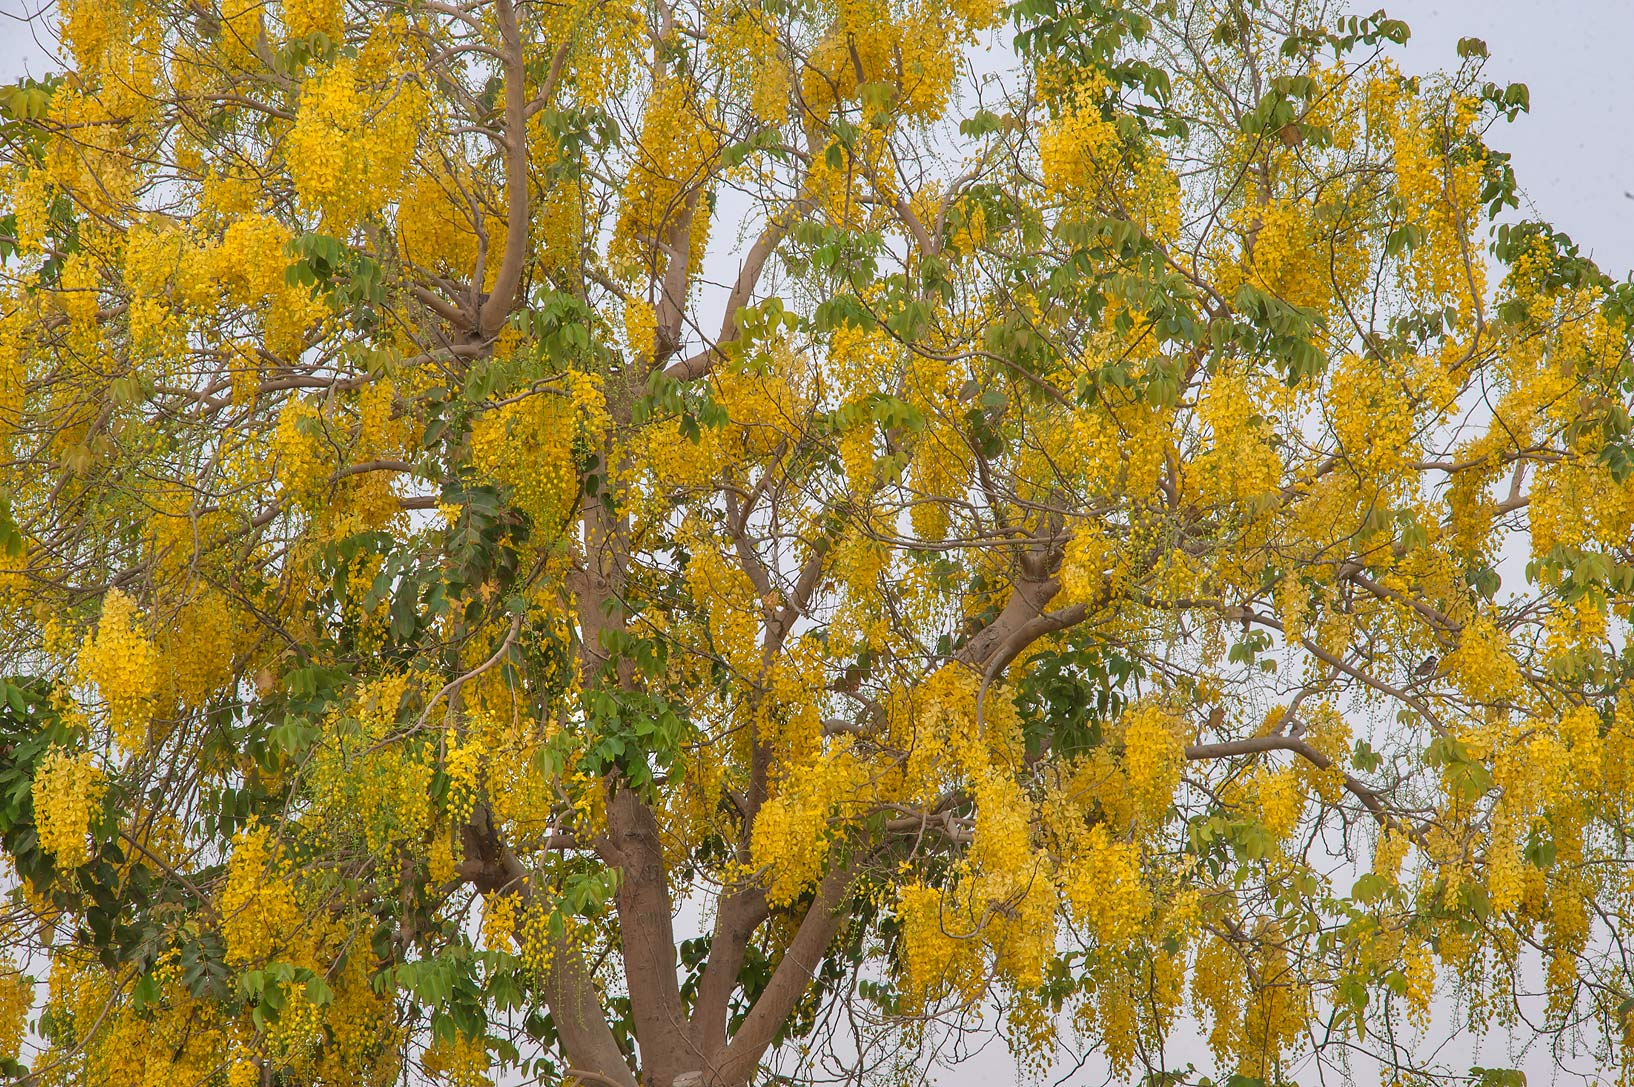 Pendulous yellow flowers of golden shower tree...fistula) in Aspire Park. Doha, Qatar